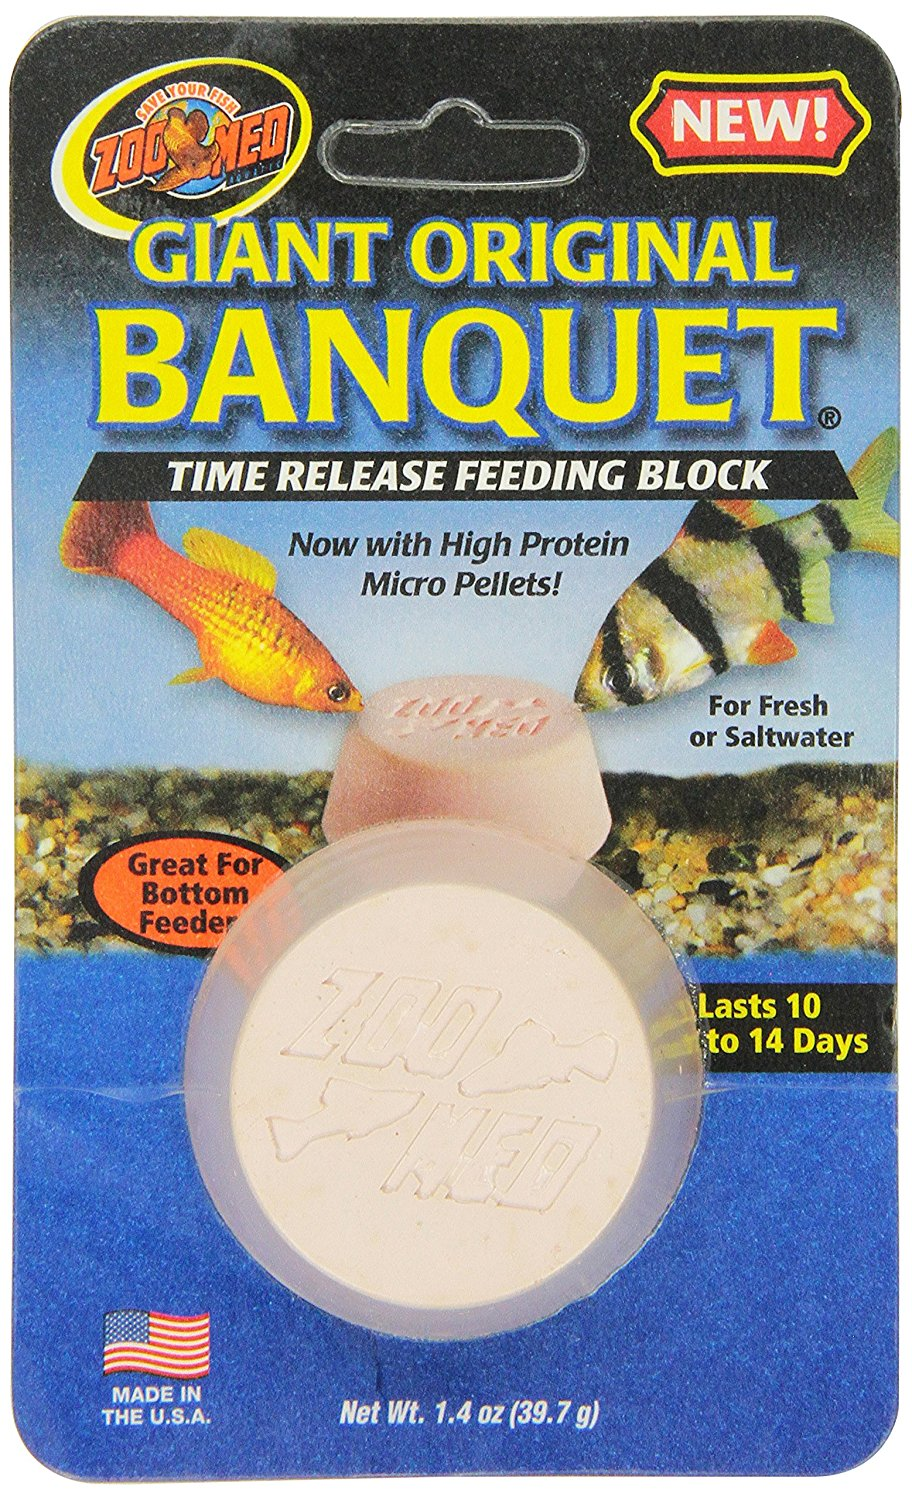 Laboratories AZMBB3 Giant Banquet Block Feeder, High protein micro pellets By Zoo Med by